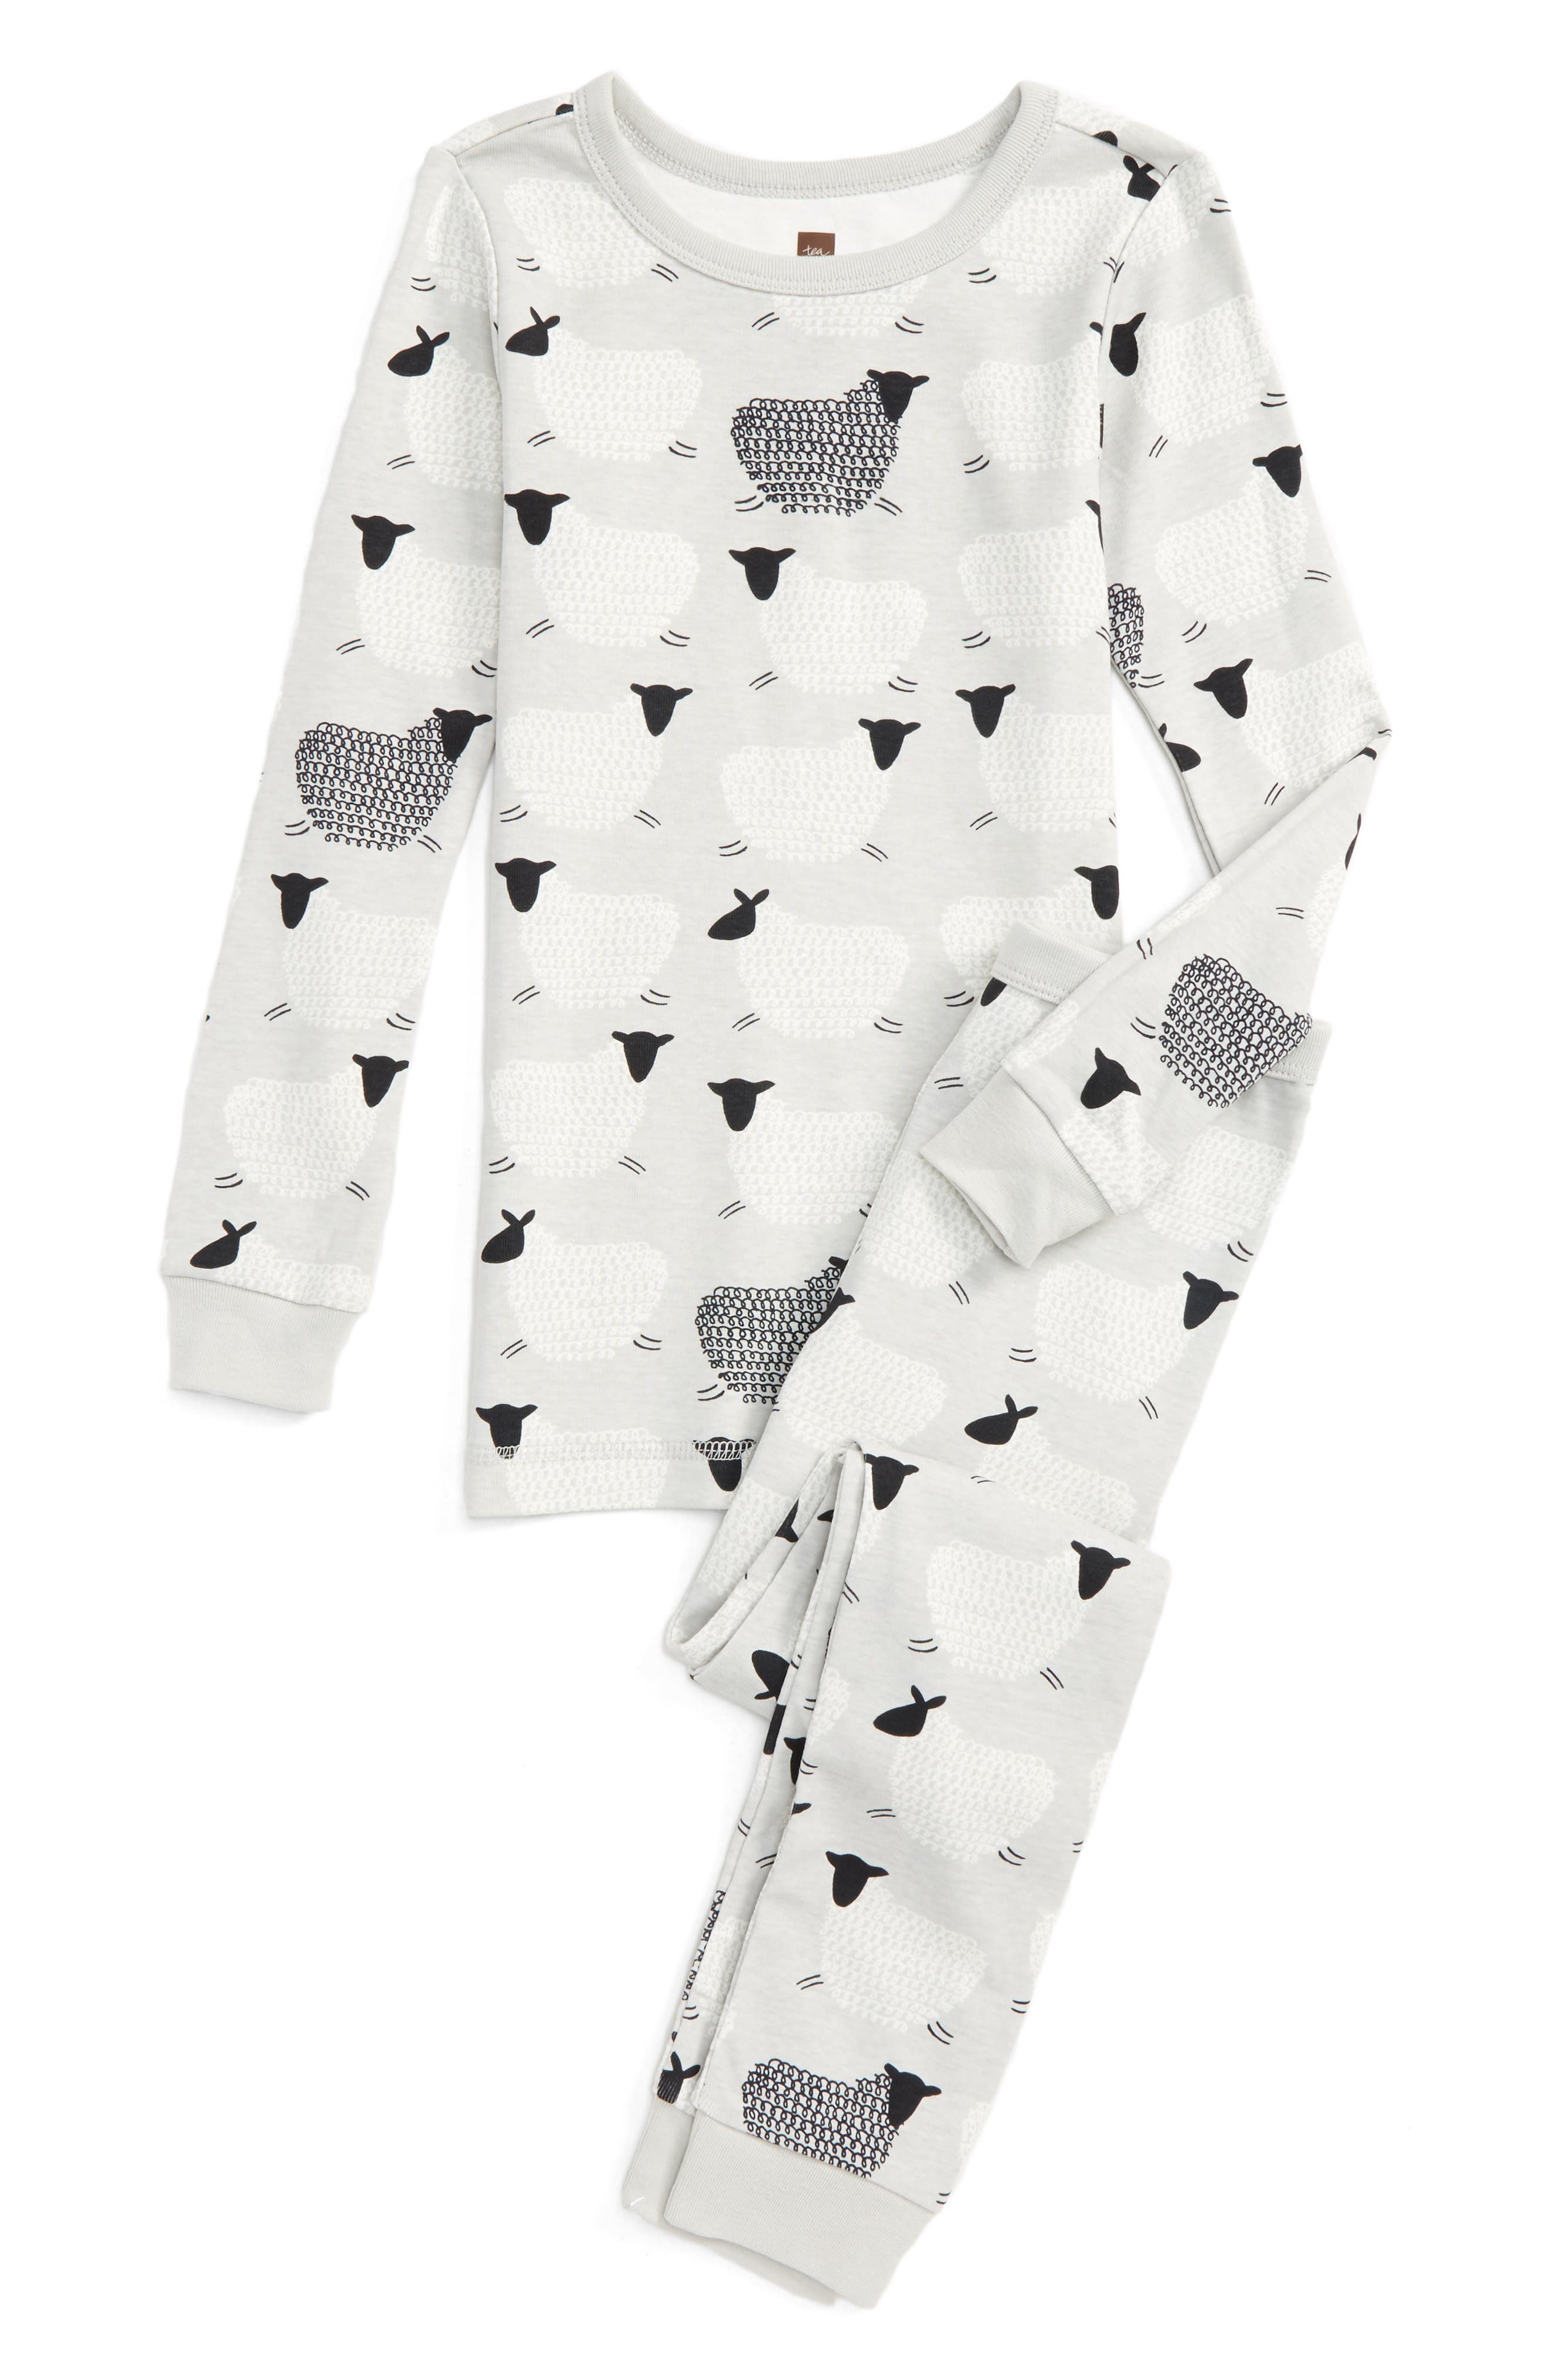 Alternate Image 1 Selected - Tea Collection Baa Baa Fitted Two-Piece Pajamas (Toddler Girls, Little Girls & Big Girls)